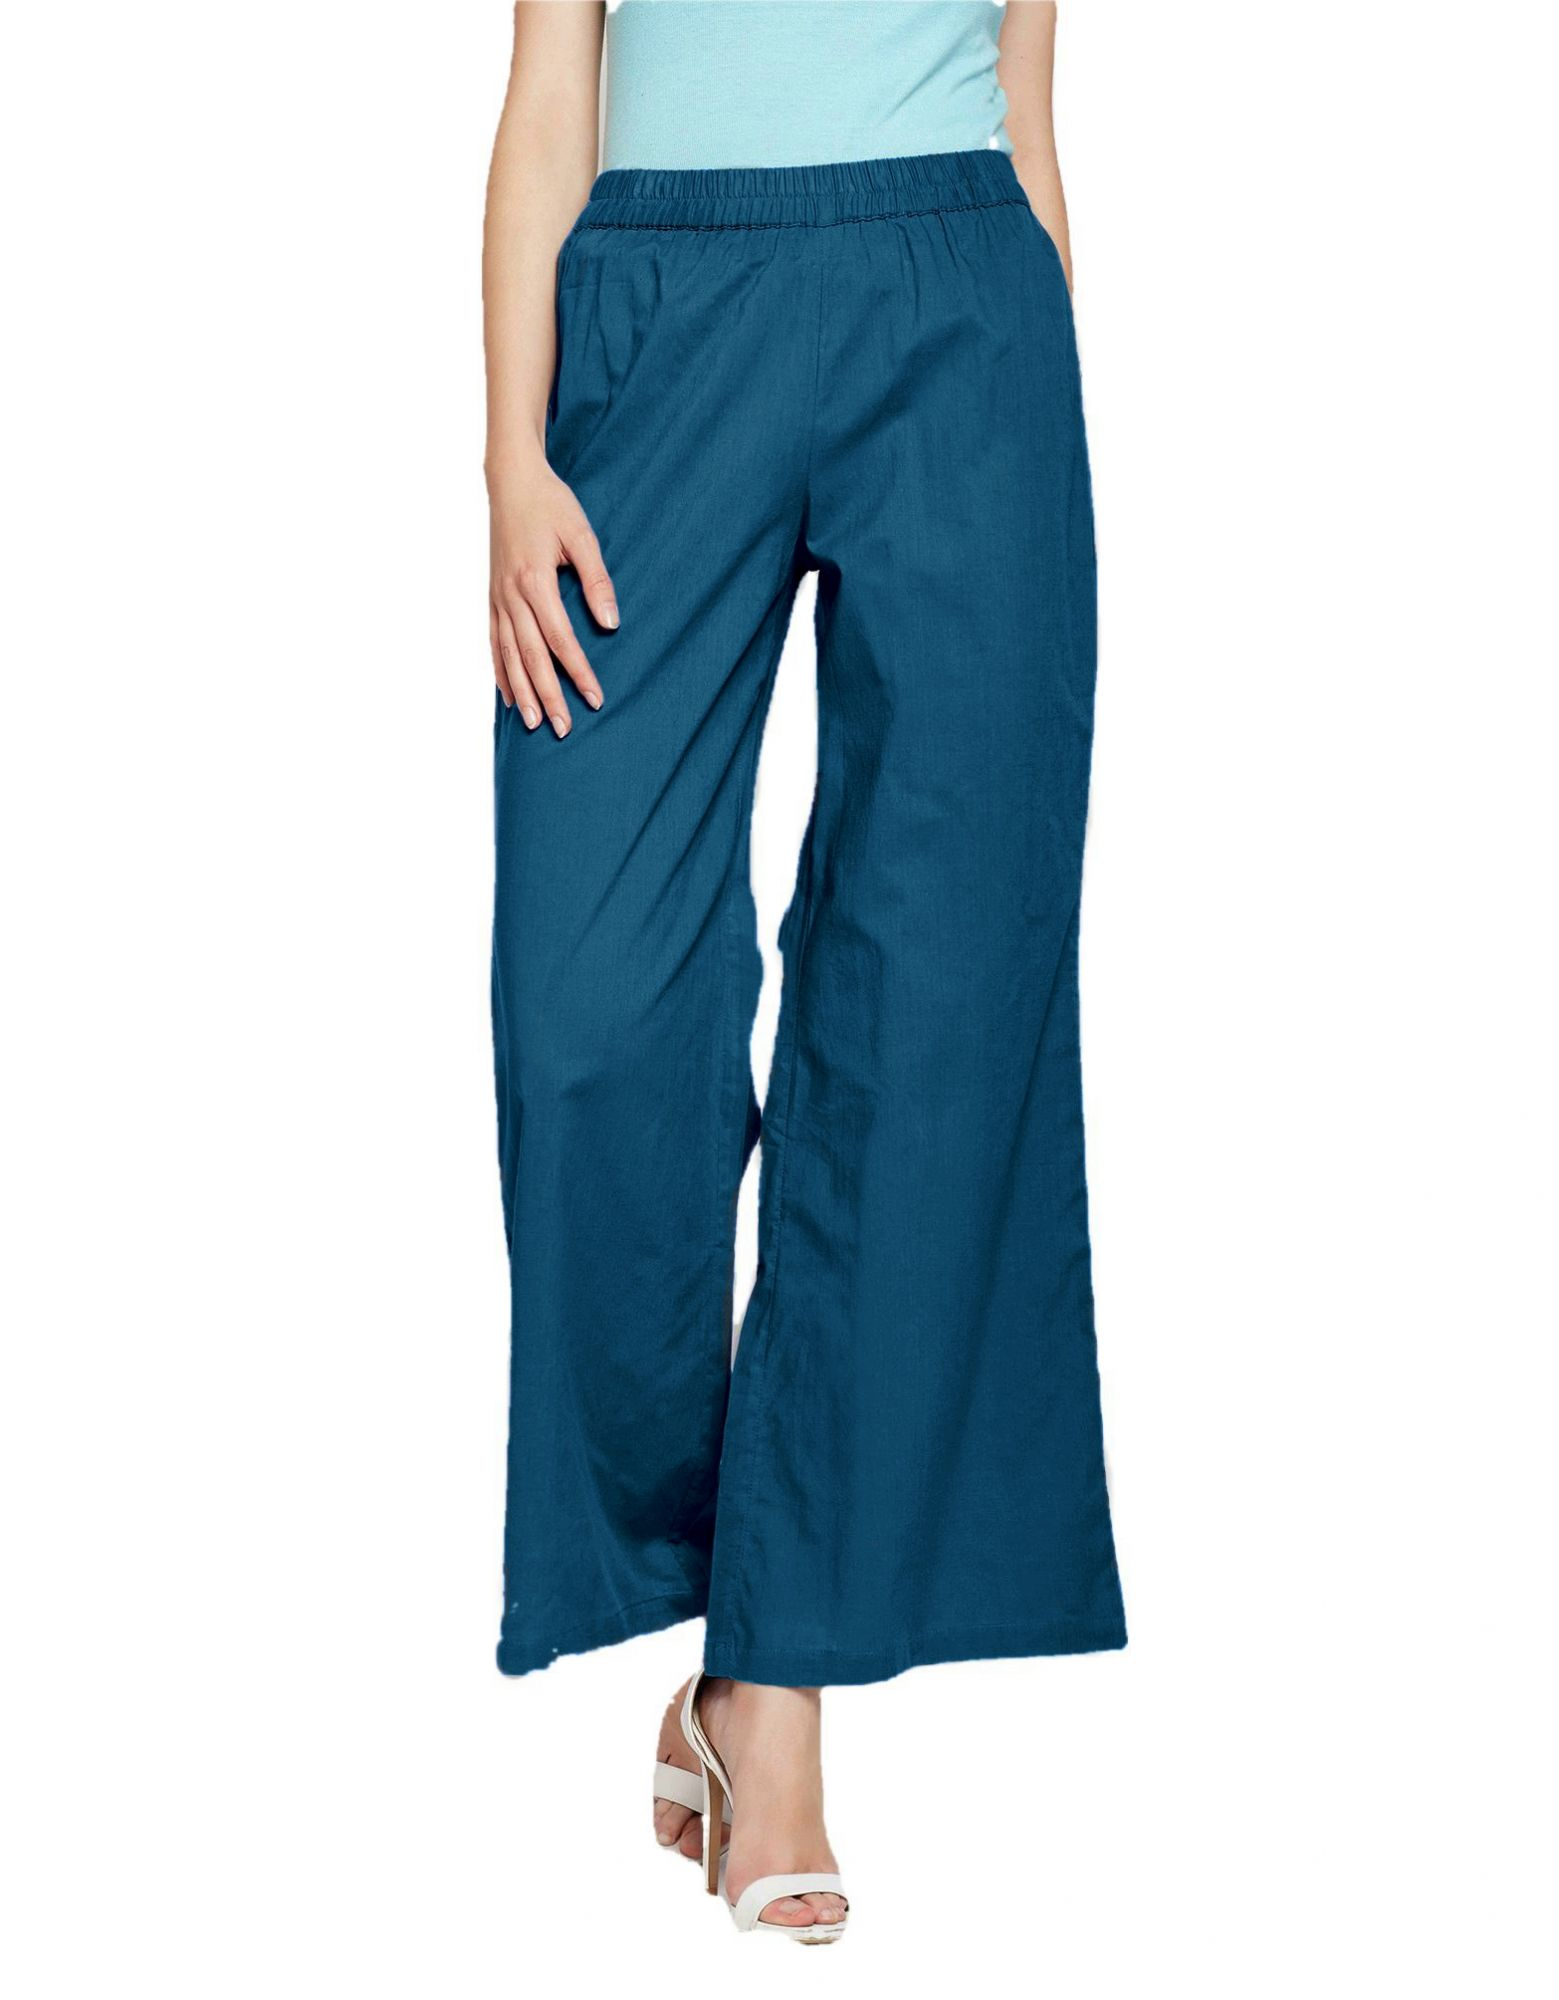 Pleated Regular Palazzo Pant in Sky Blue